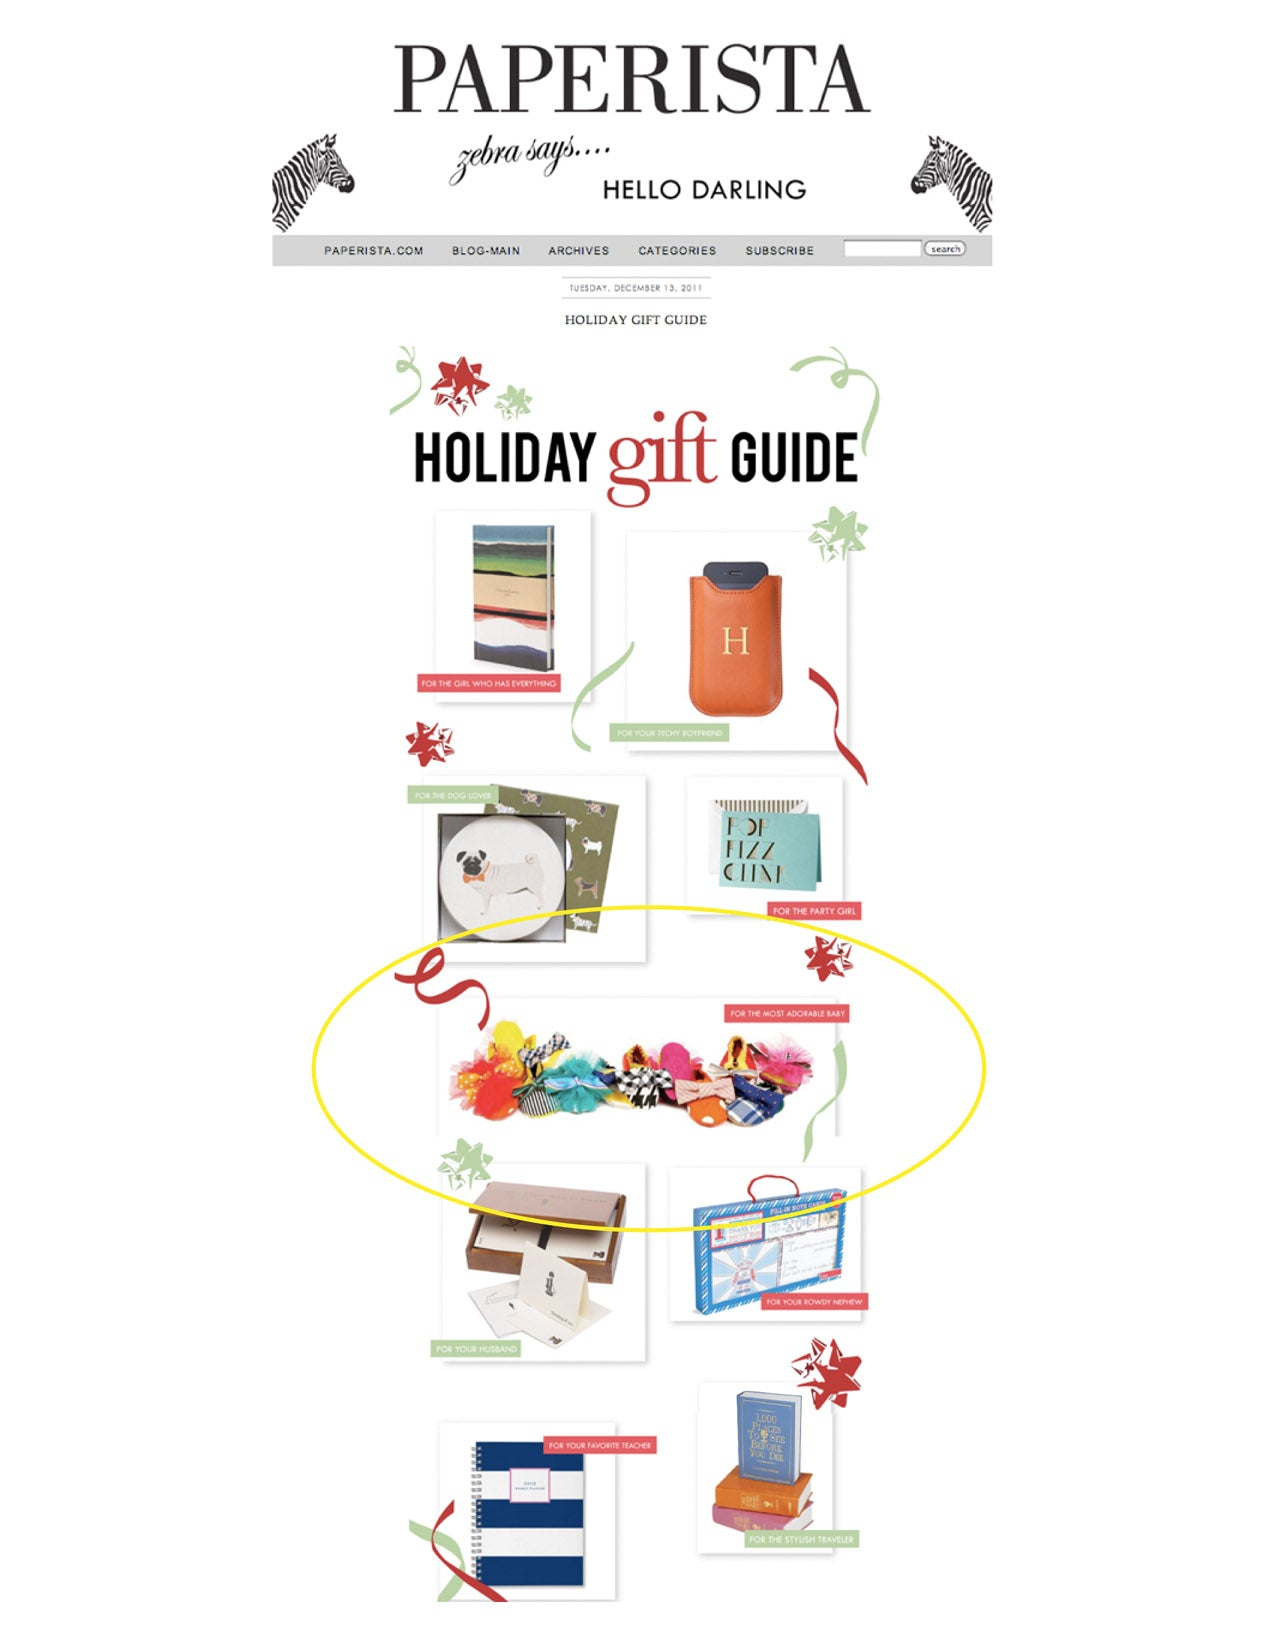 Paperista Holiday Gift Guide